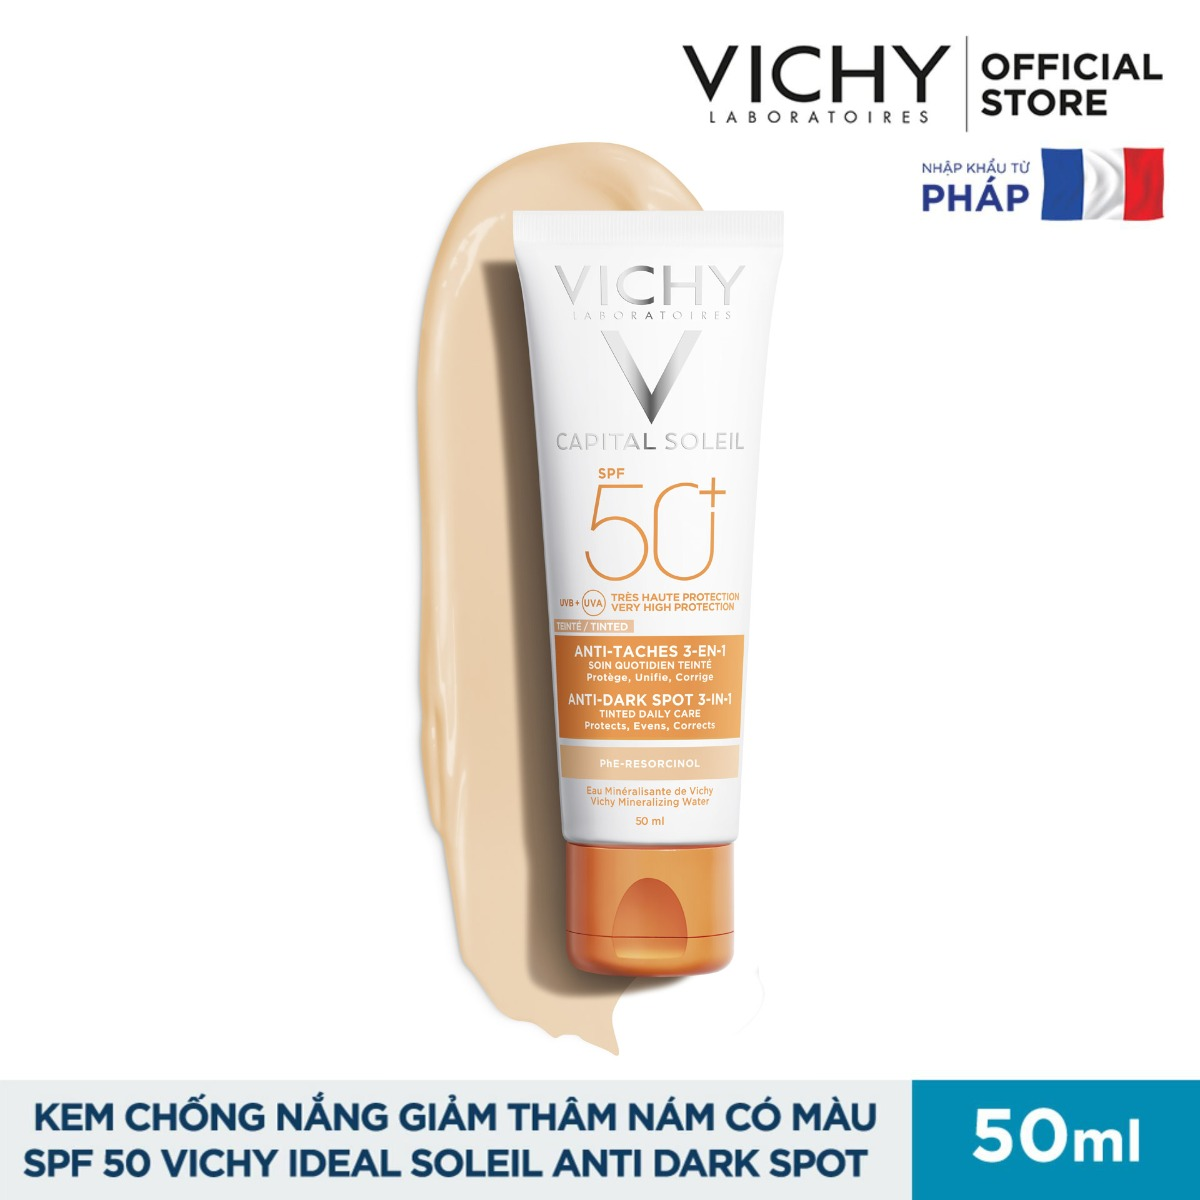 Kem Chống Nắng Vichy Capital Soleil Anti-Dark Spot 3-in-1 Tinted Daily Care SPF 50 UVA + UVB